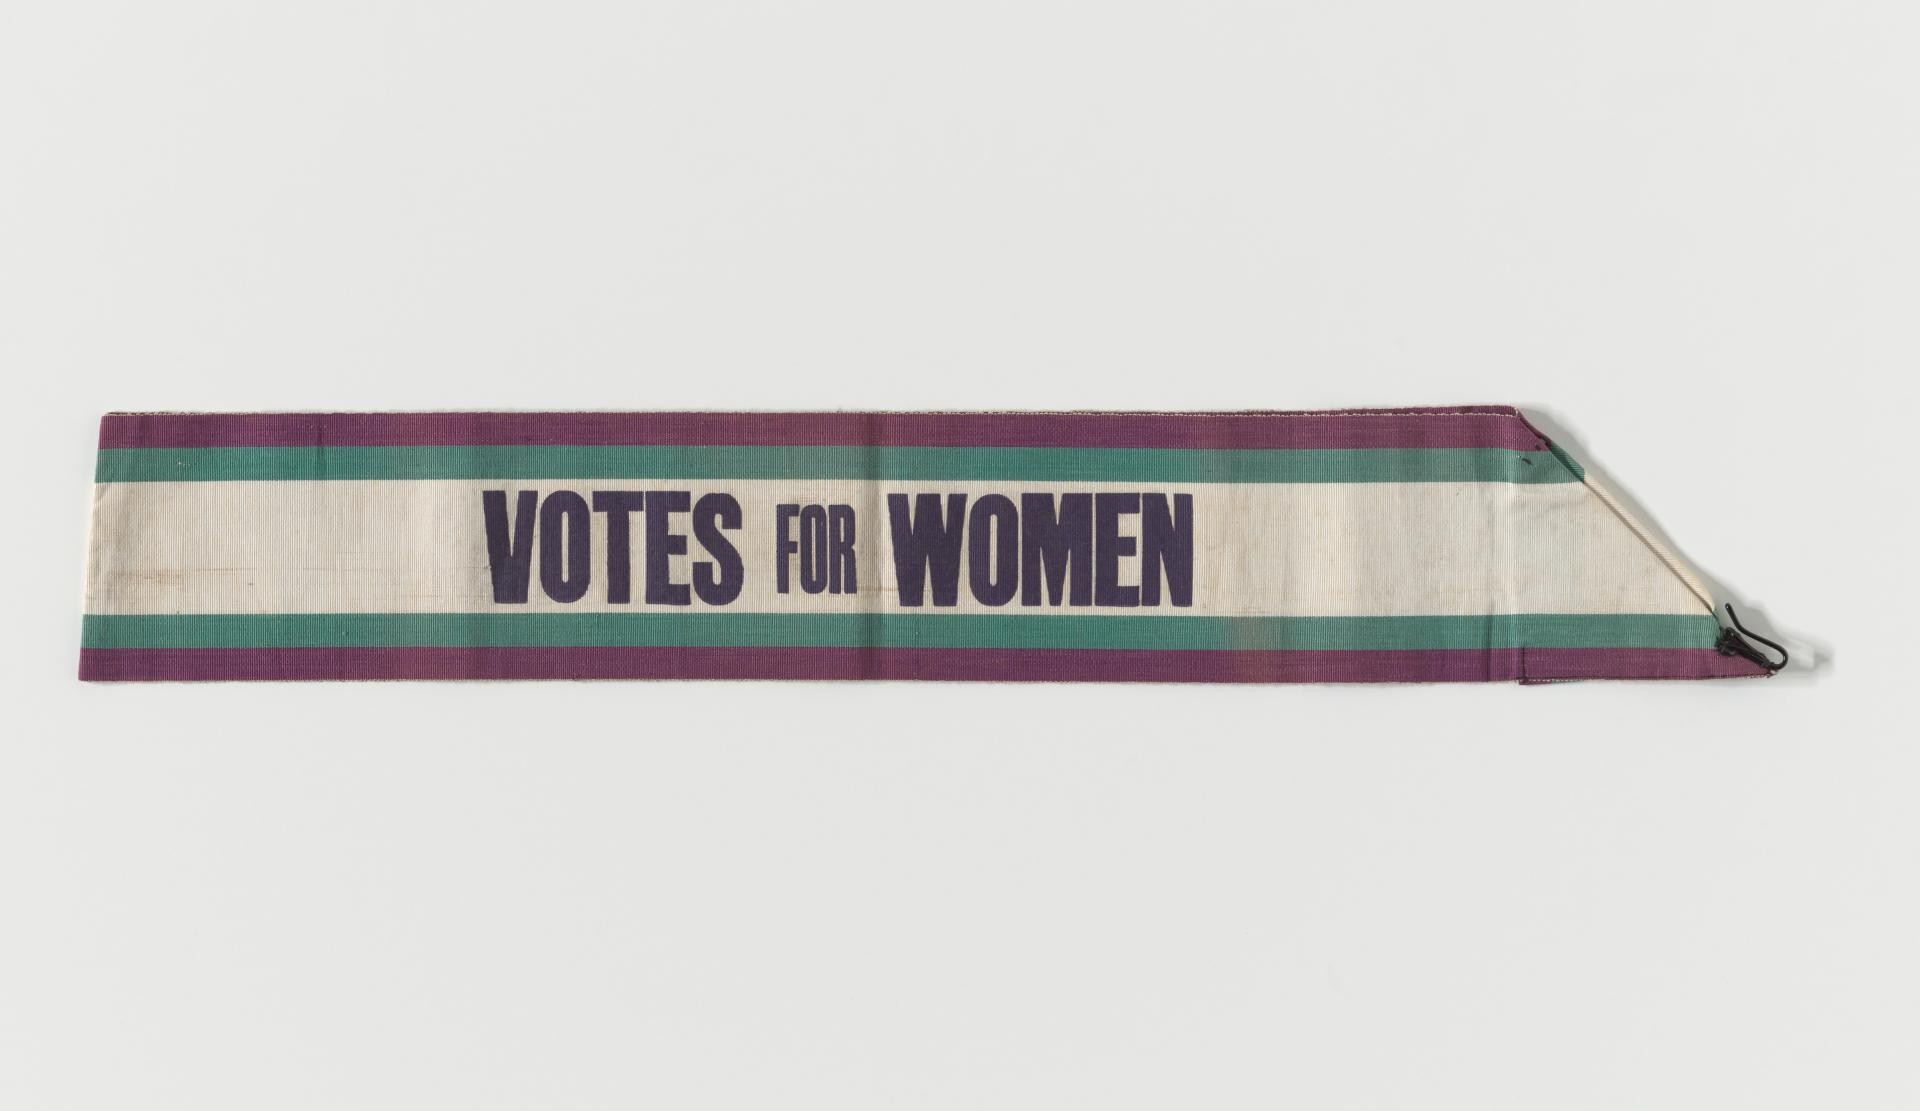 Krystyna Campbell: Pretty am and family suffrage research collection